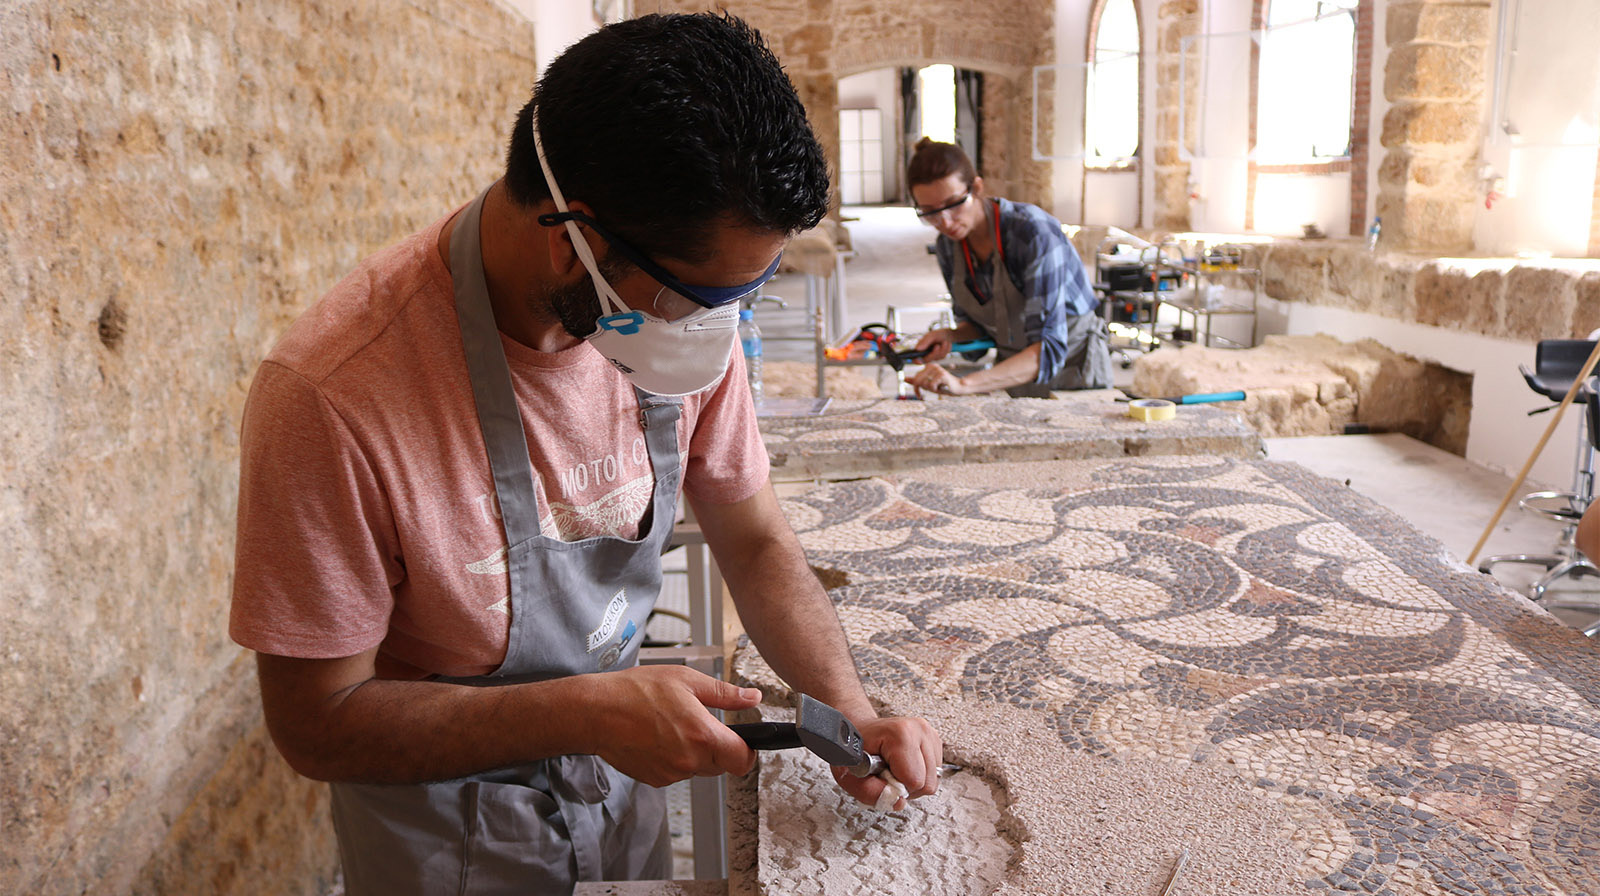 A man wearing a dust mask and safety goggles uses a hammer and chisel at an angle to chip away mortar that had filled a gap in a mosaic with a black and red decorative pattern against a white background.